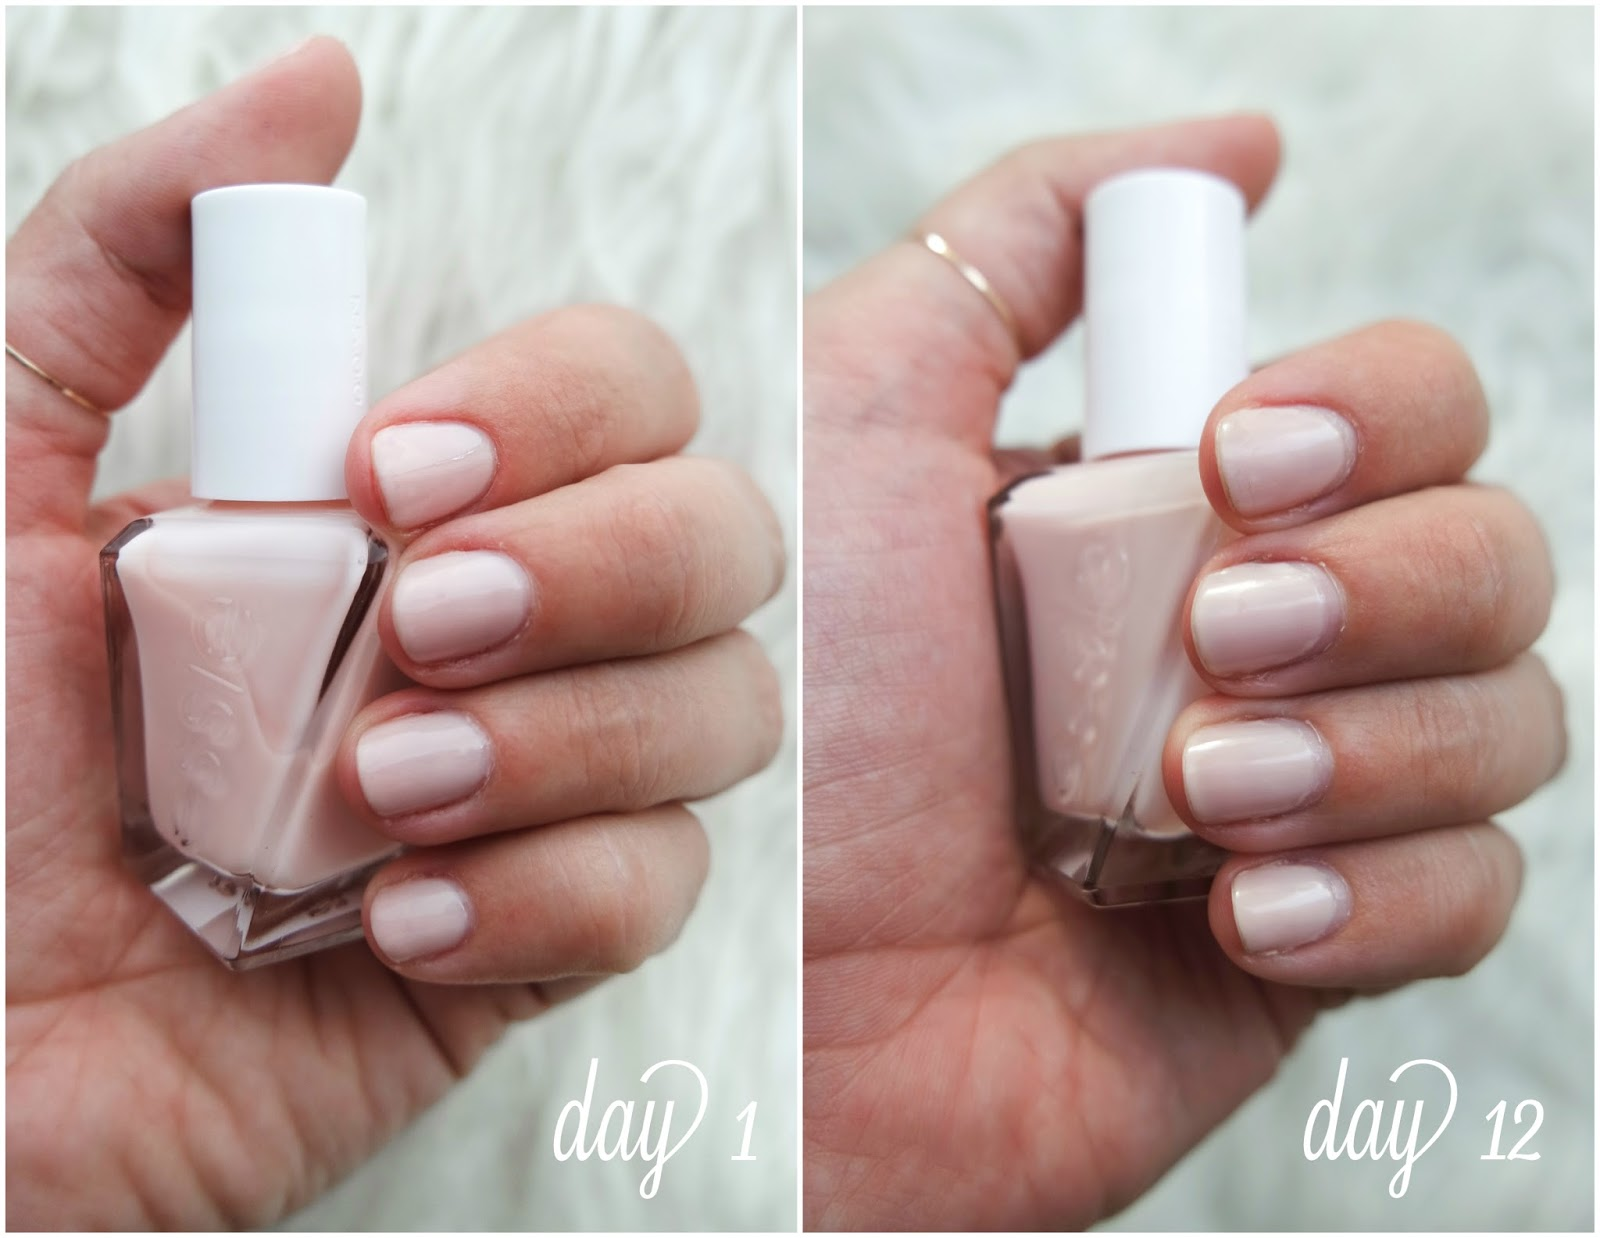 Franish: beauty tuesday: essie gel couture review